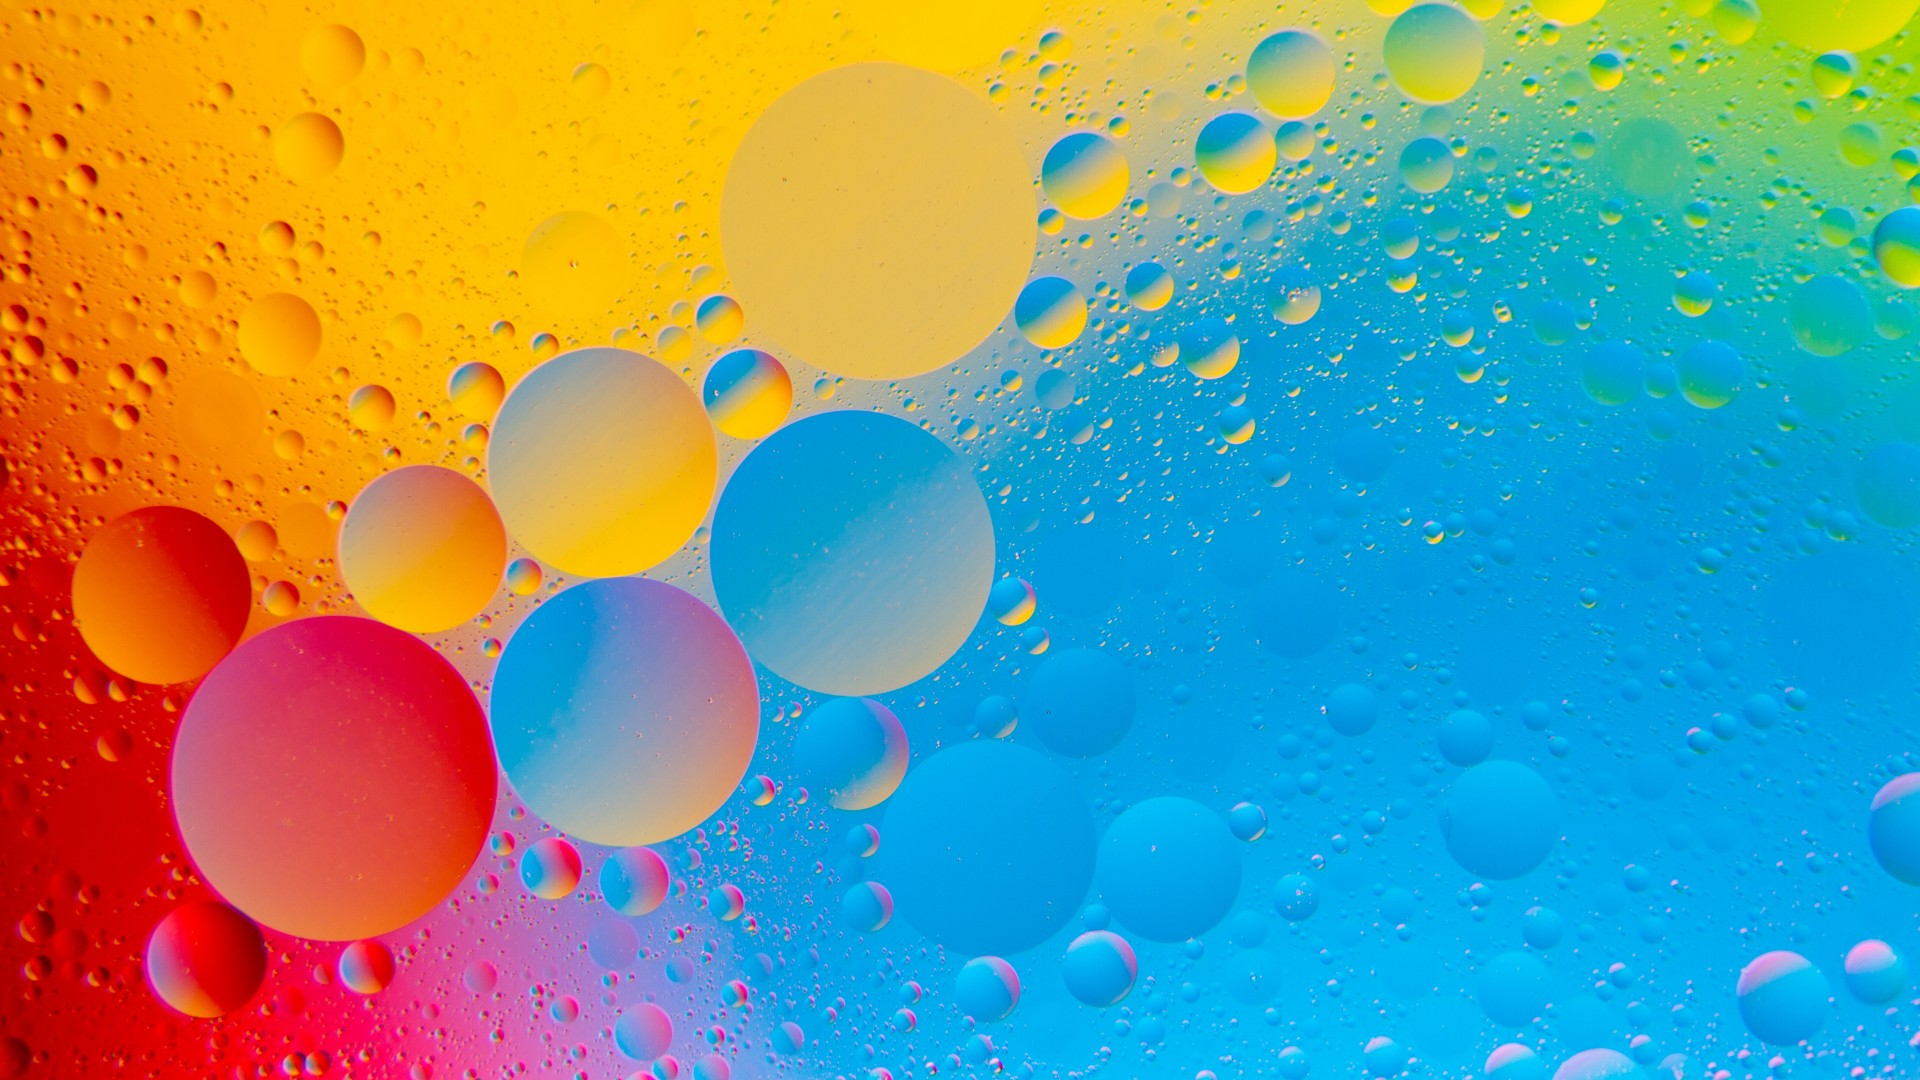 Colourful Bubbles 4k Hd Abstract Wallpaper Iphone 7 Plus Iphone 8